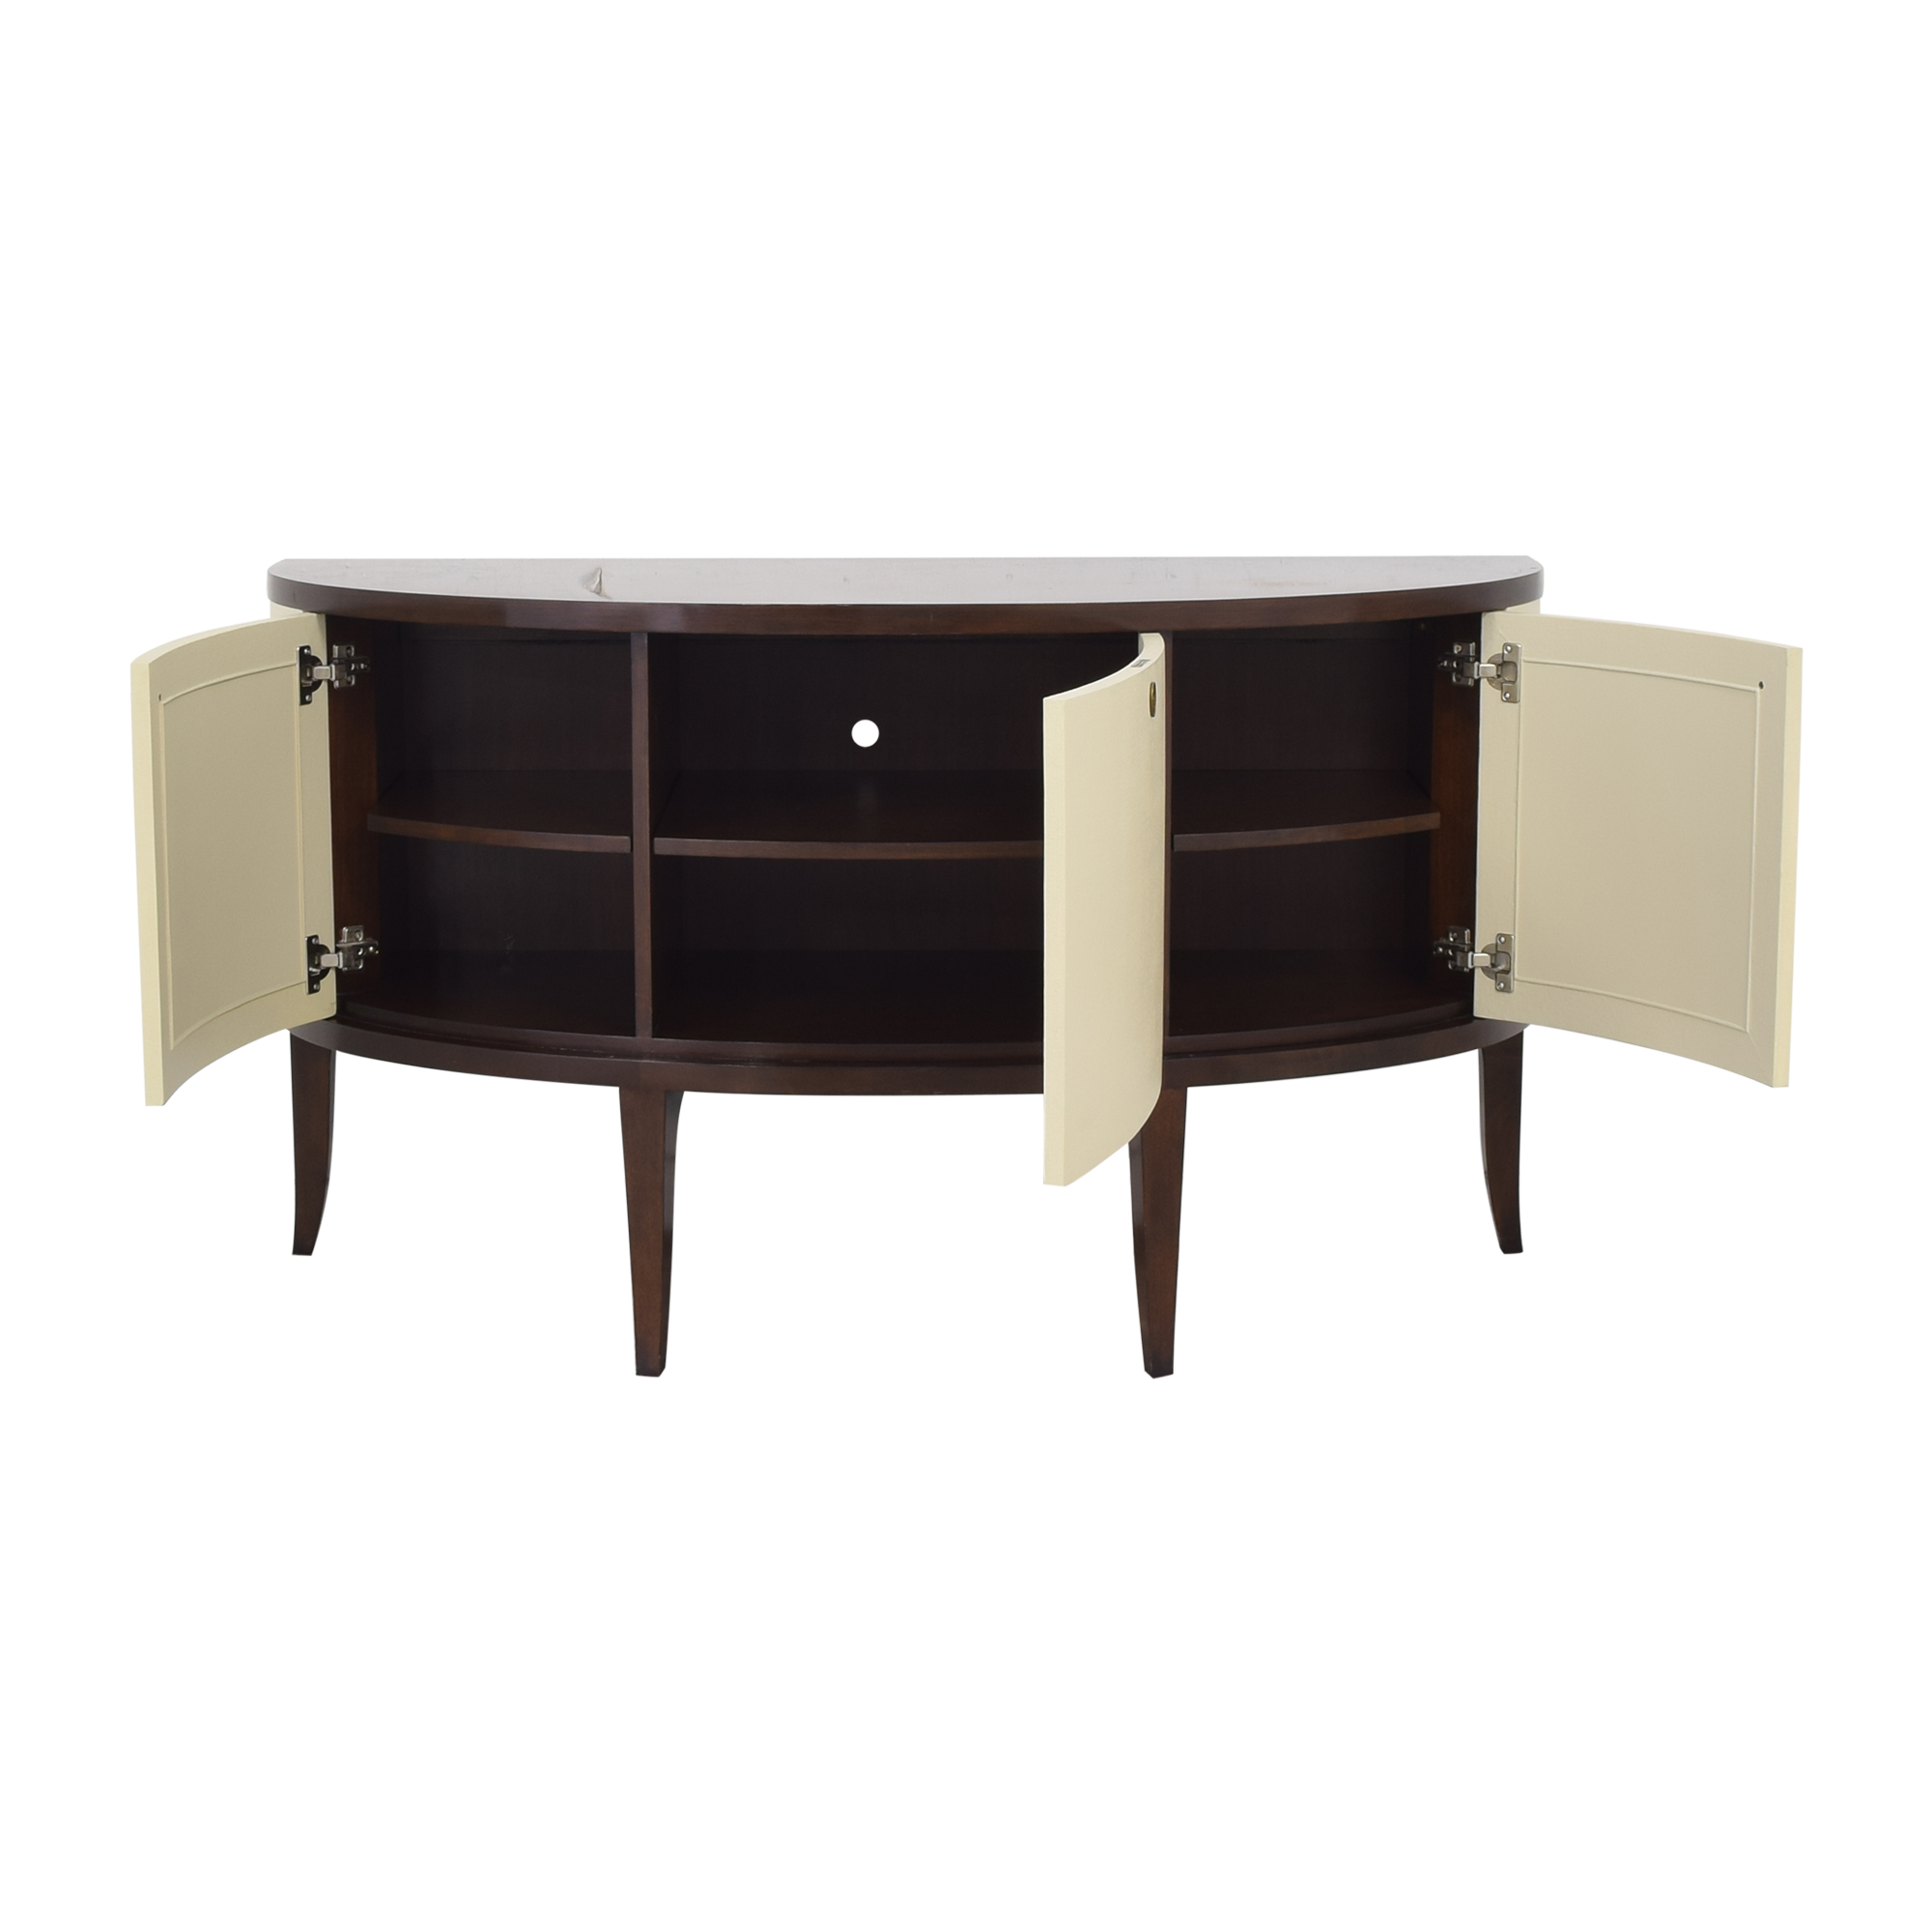 Barbara Barry for Henredon Demilune Console Table / Tables